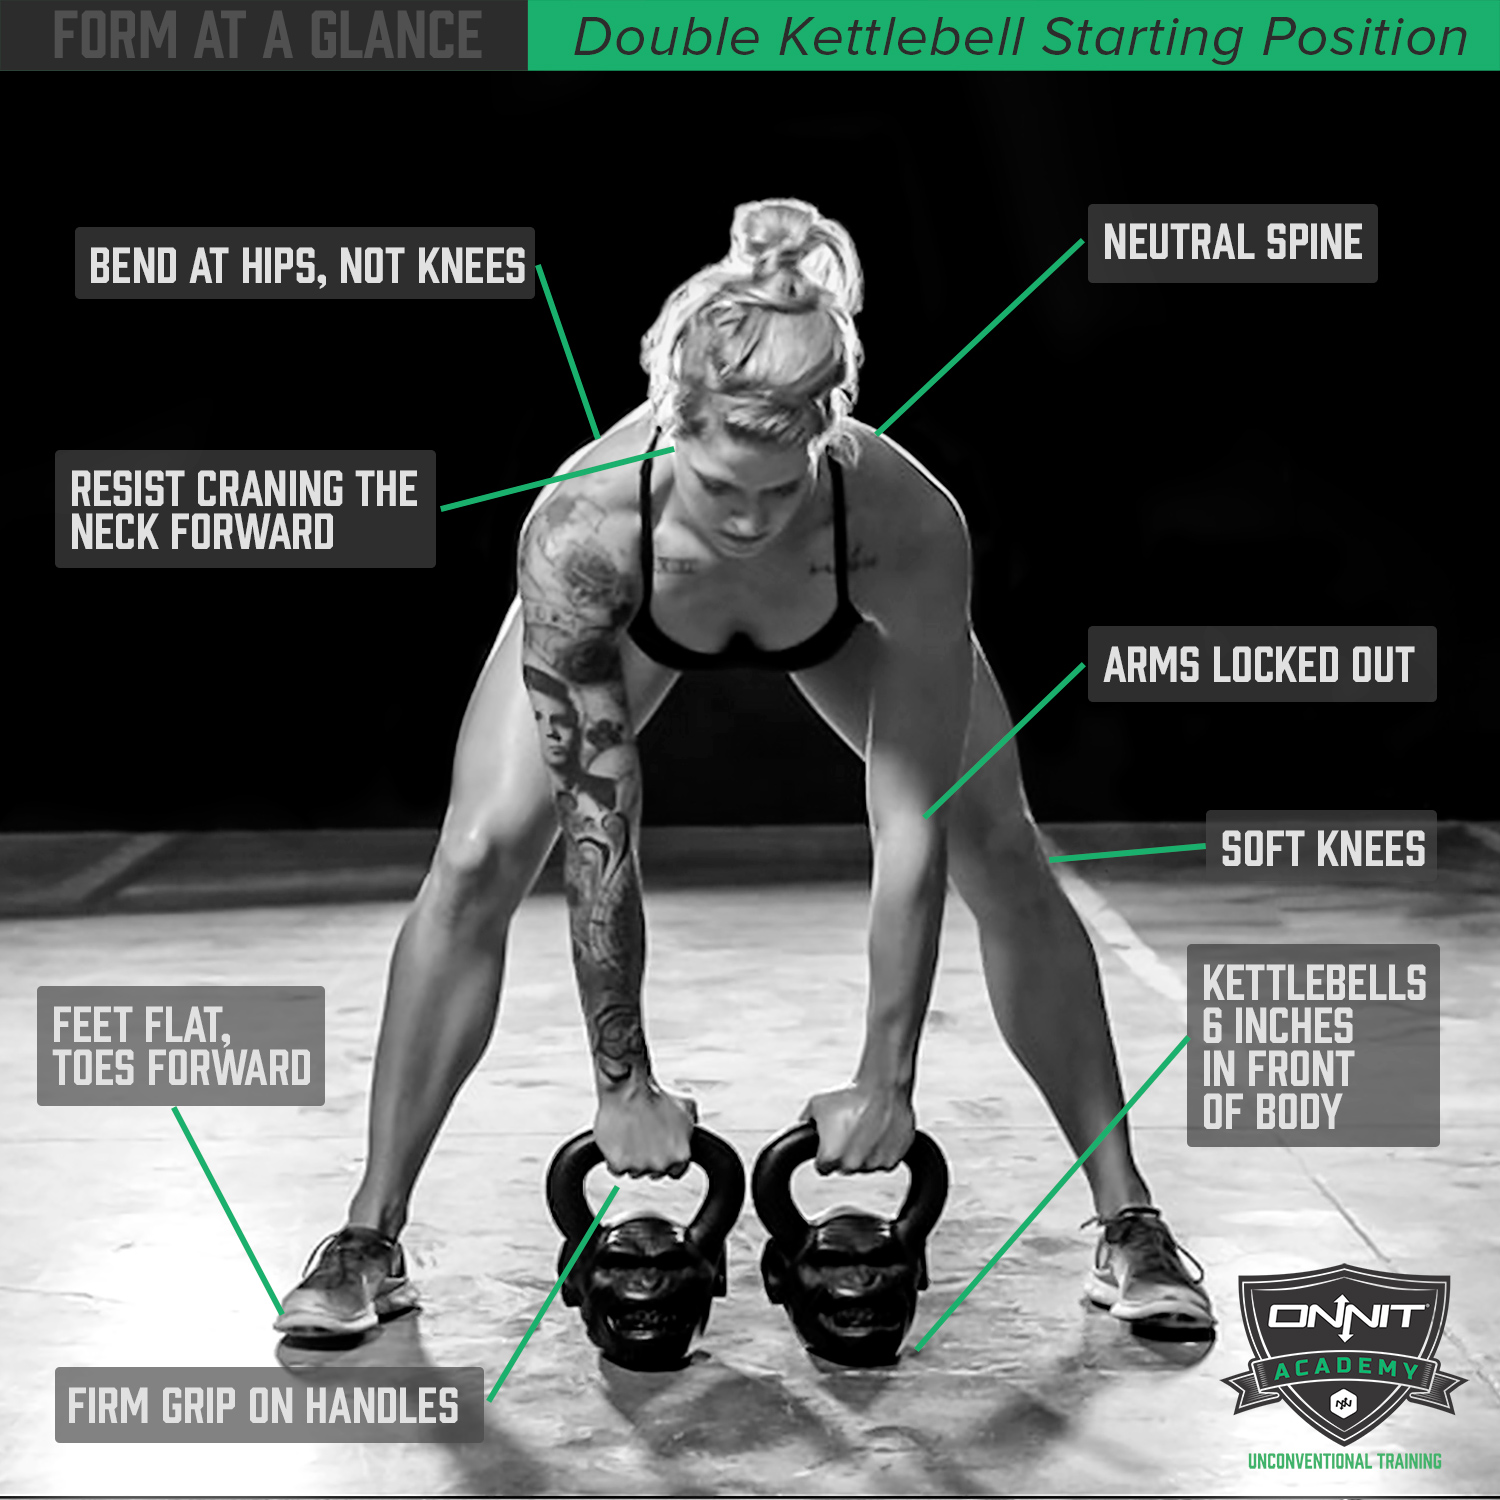 Form At A Glance Double Kettlebell Starting Position